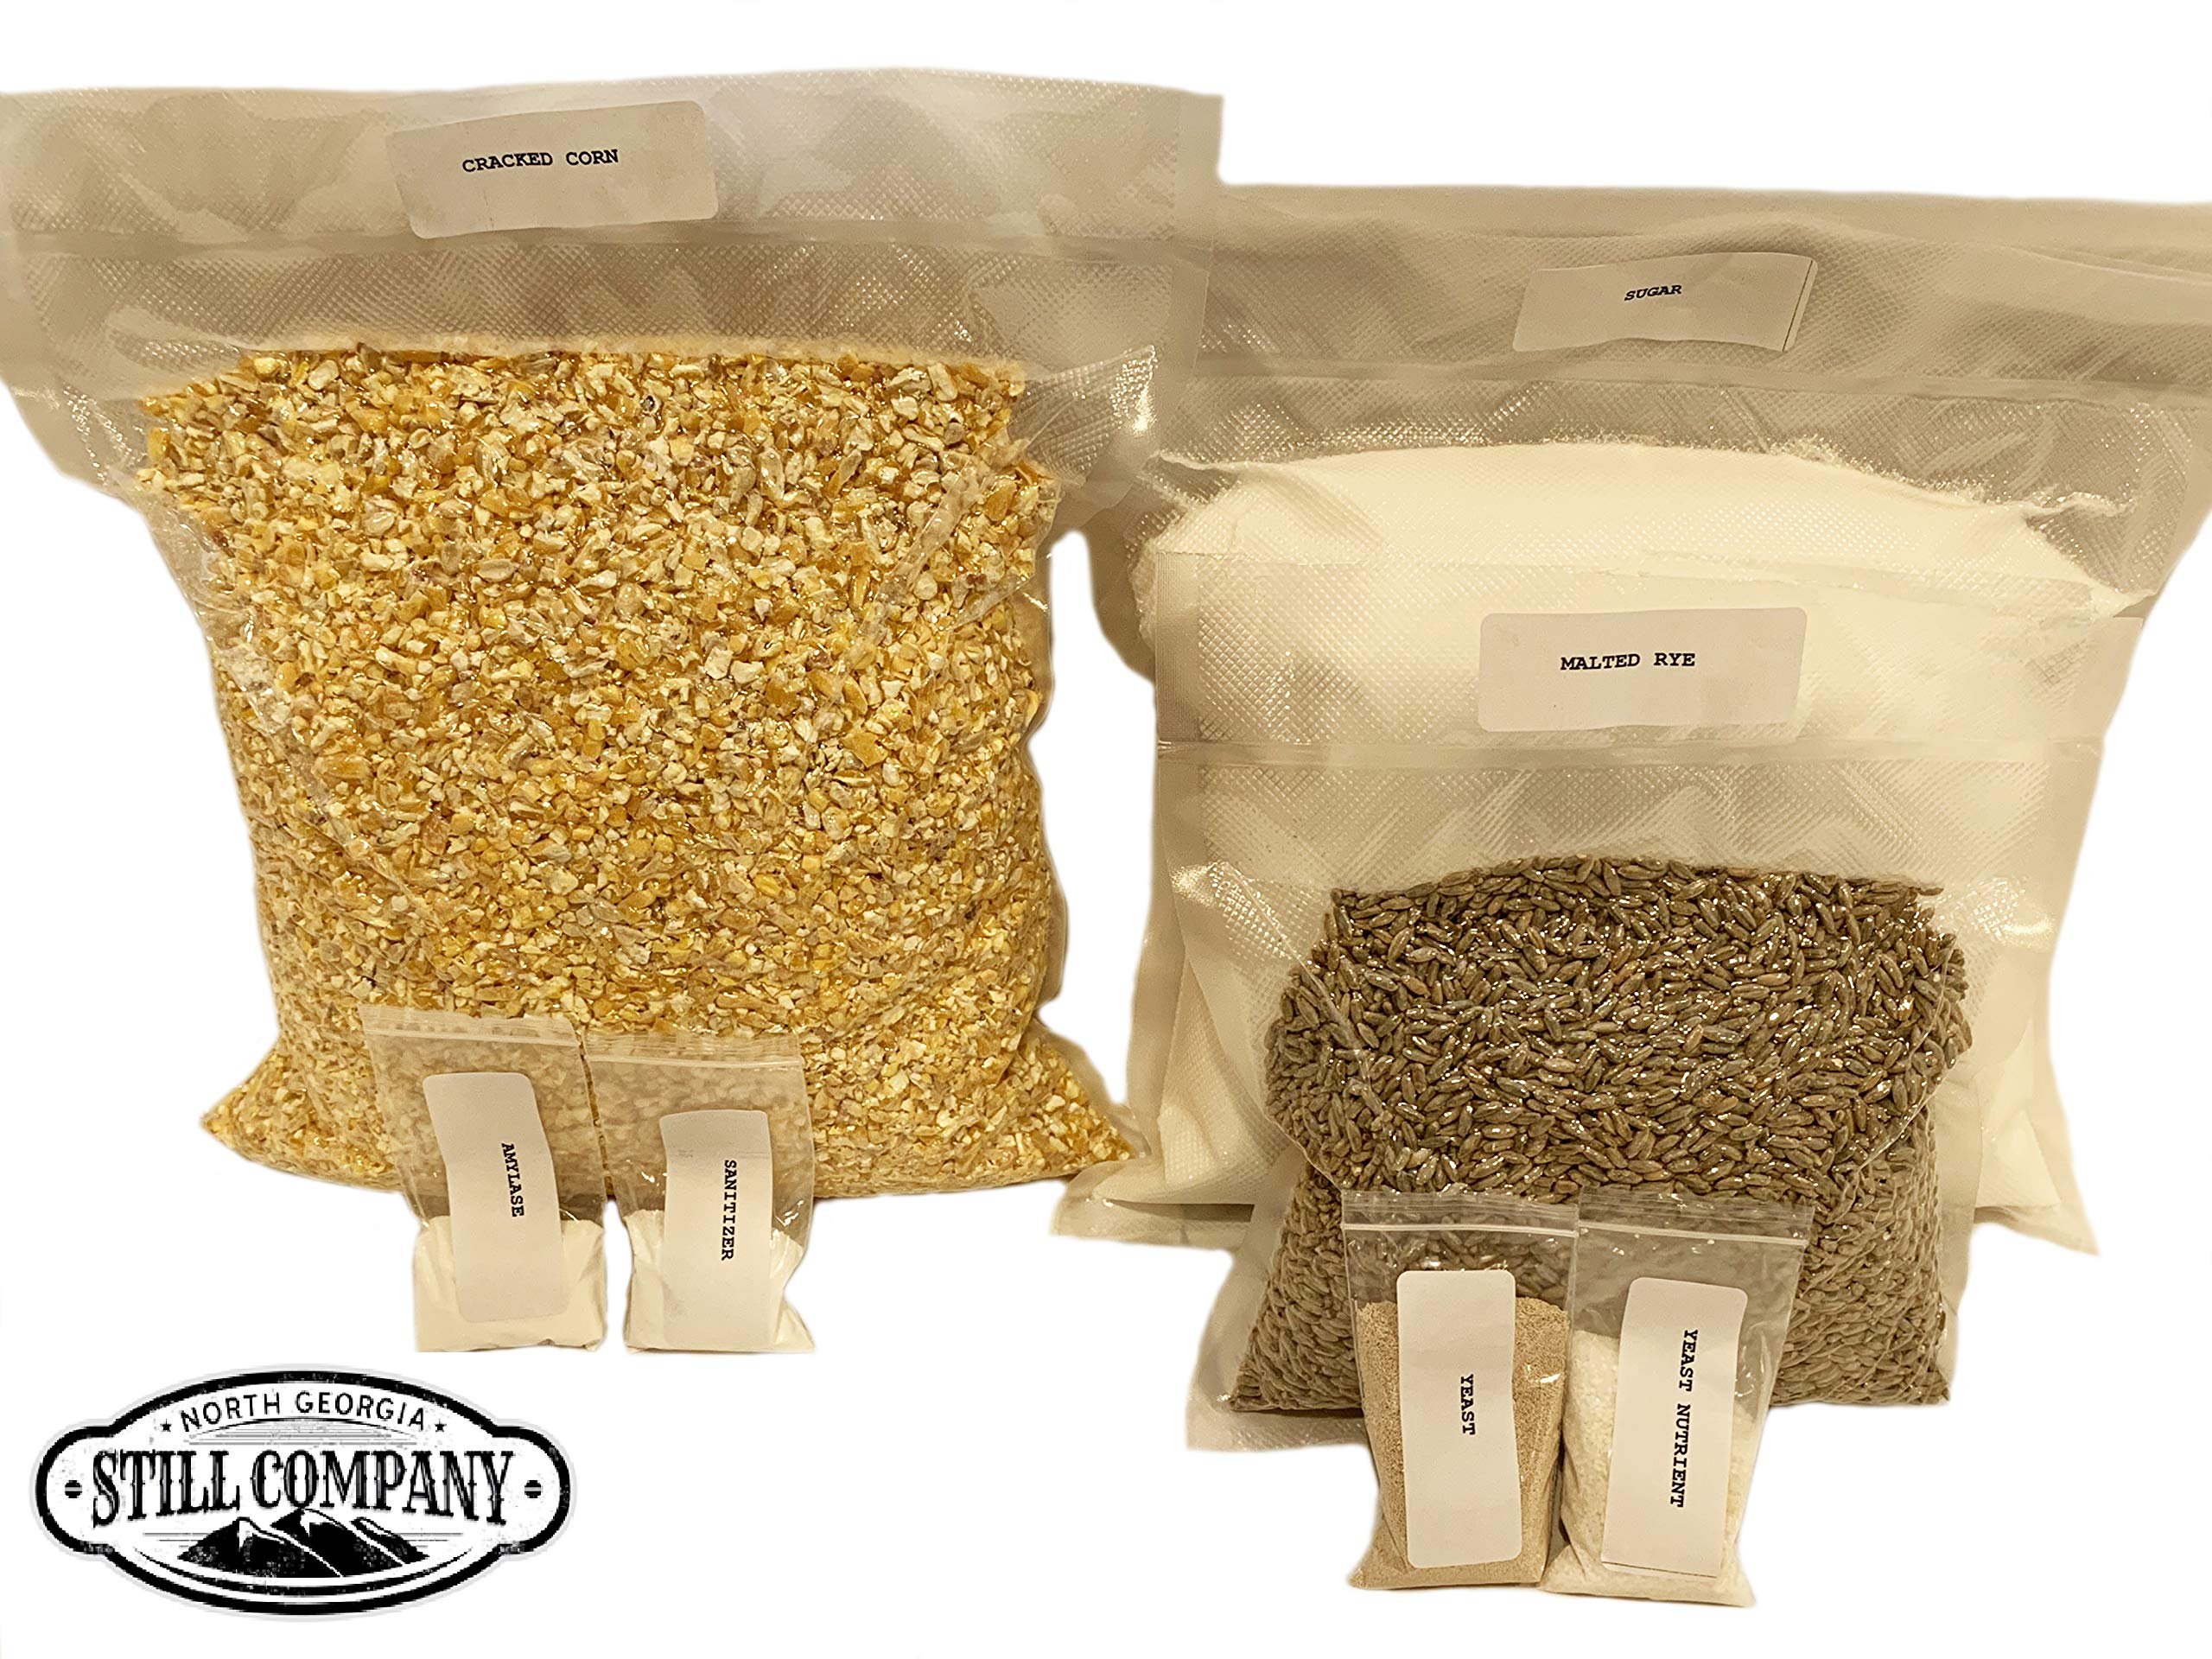 Complete Cracked Corn, Malted Rye Whiskey Mash & Fermentation Kit by North Georgia Still Company